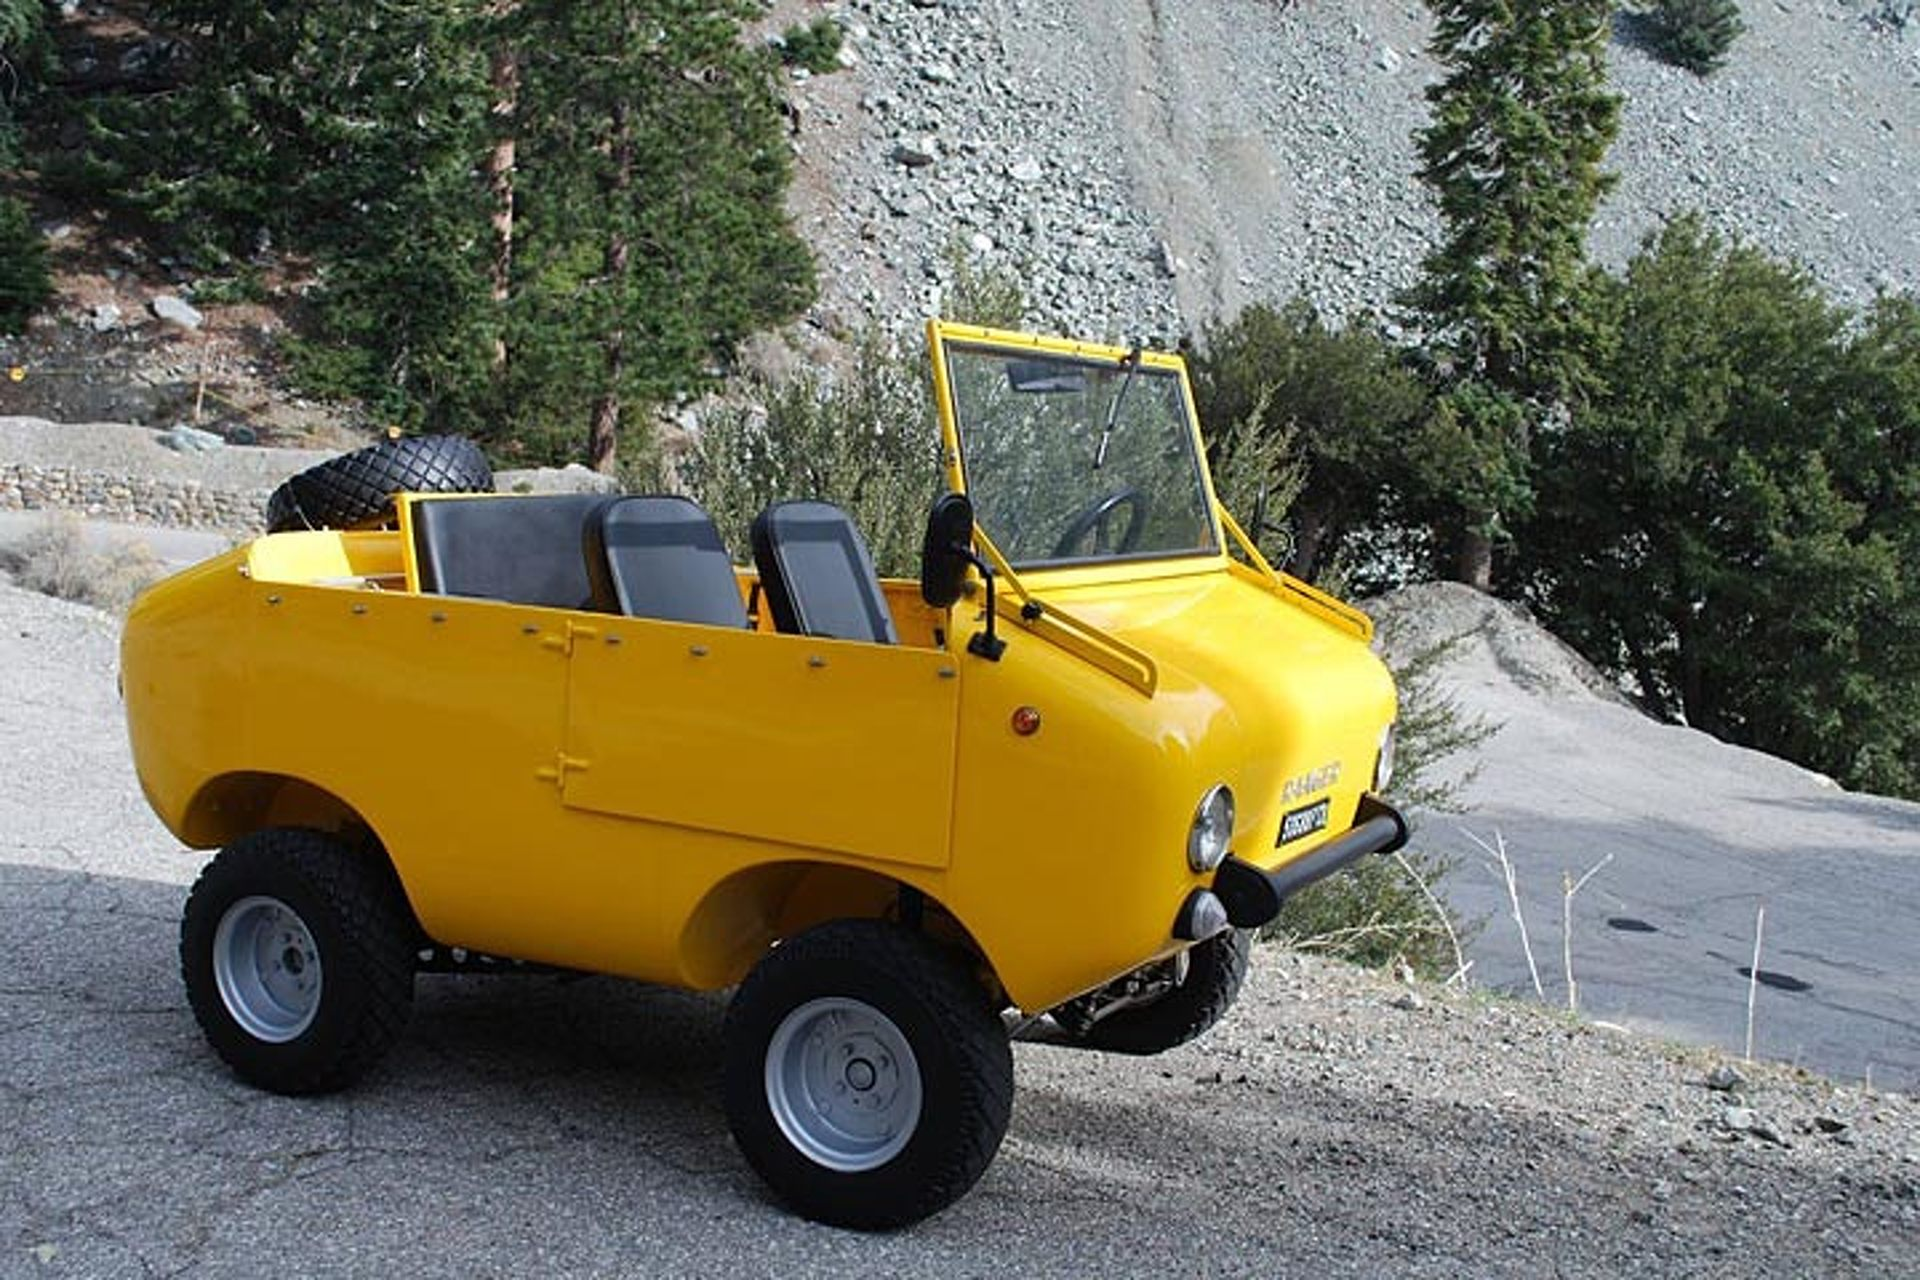 eBay Find 'Ranger' Off-Roader is Pretty Much a Fiat 500 on Steroids